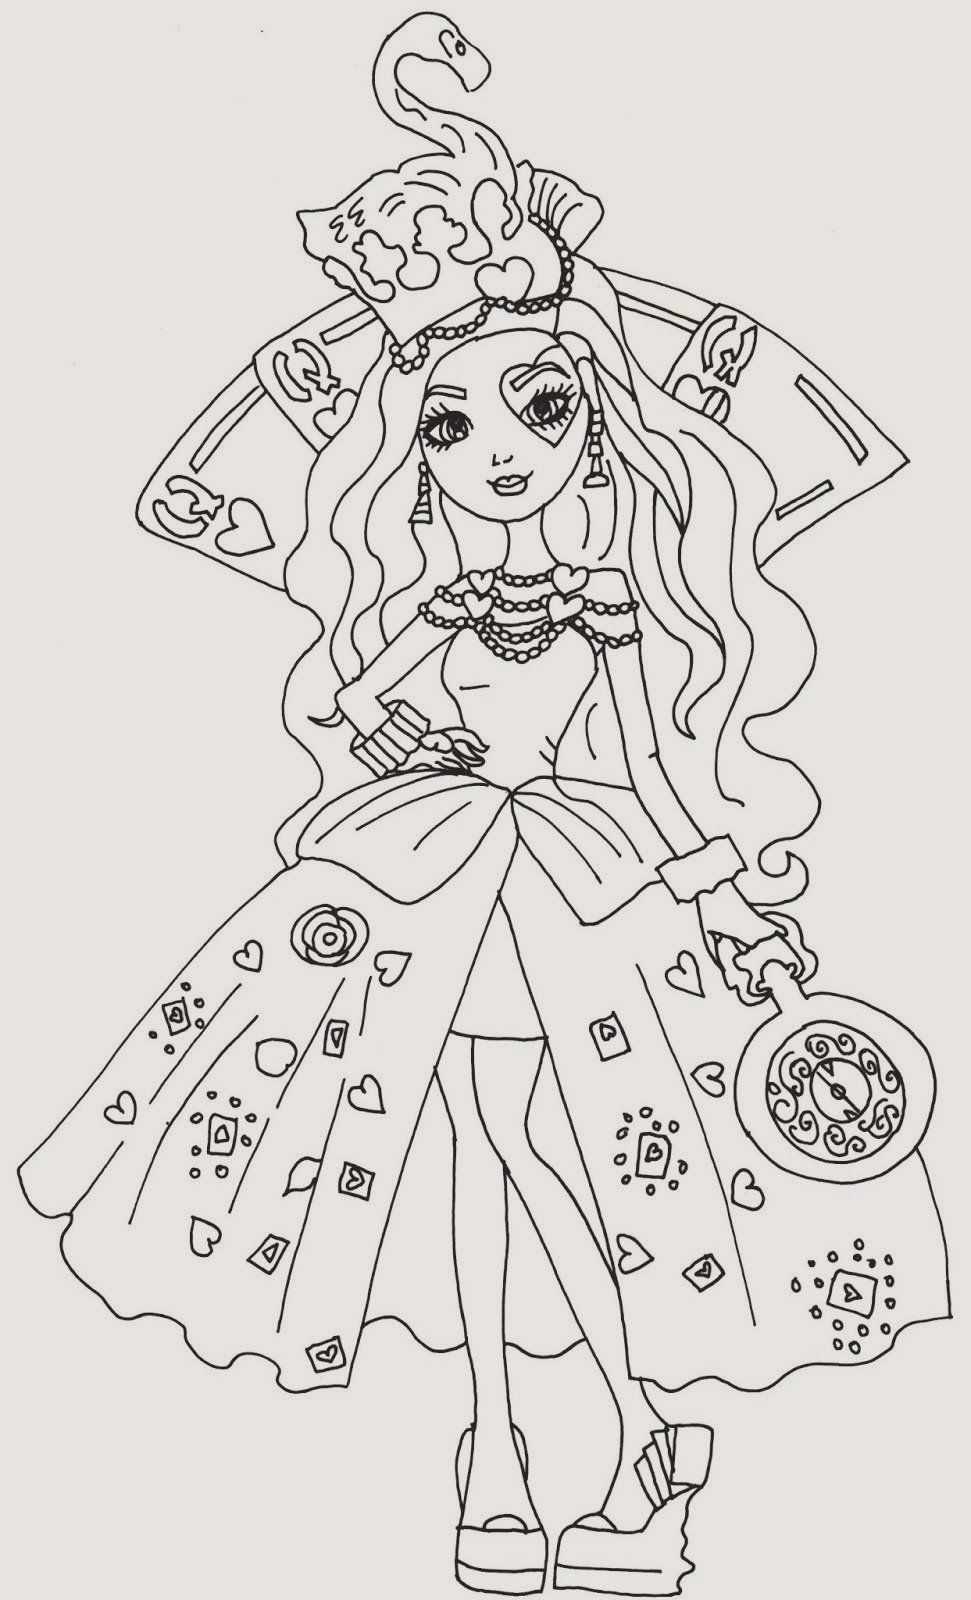 Ever After High Coloring Pages Unique 31 Inspirierend Ever After High Ausmalbilder Neuste In 2020 Heart Coloring Pages Minion Coloring Pages Cartoon Coloring Pages